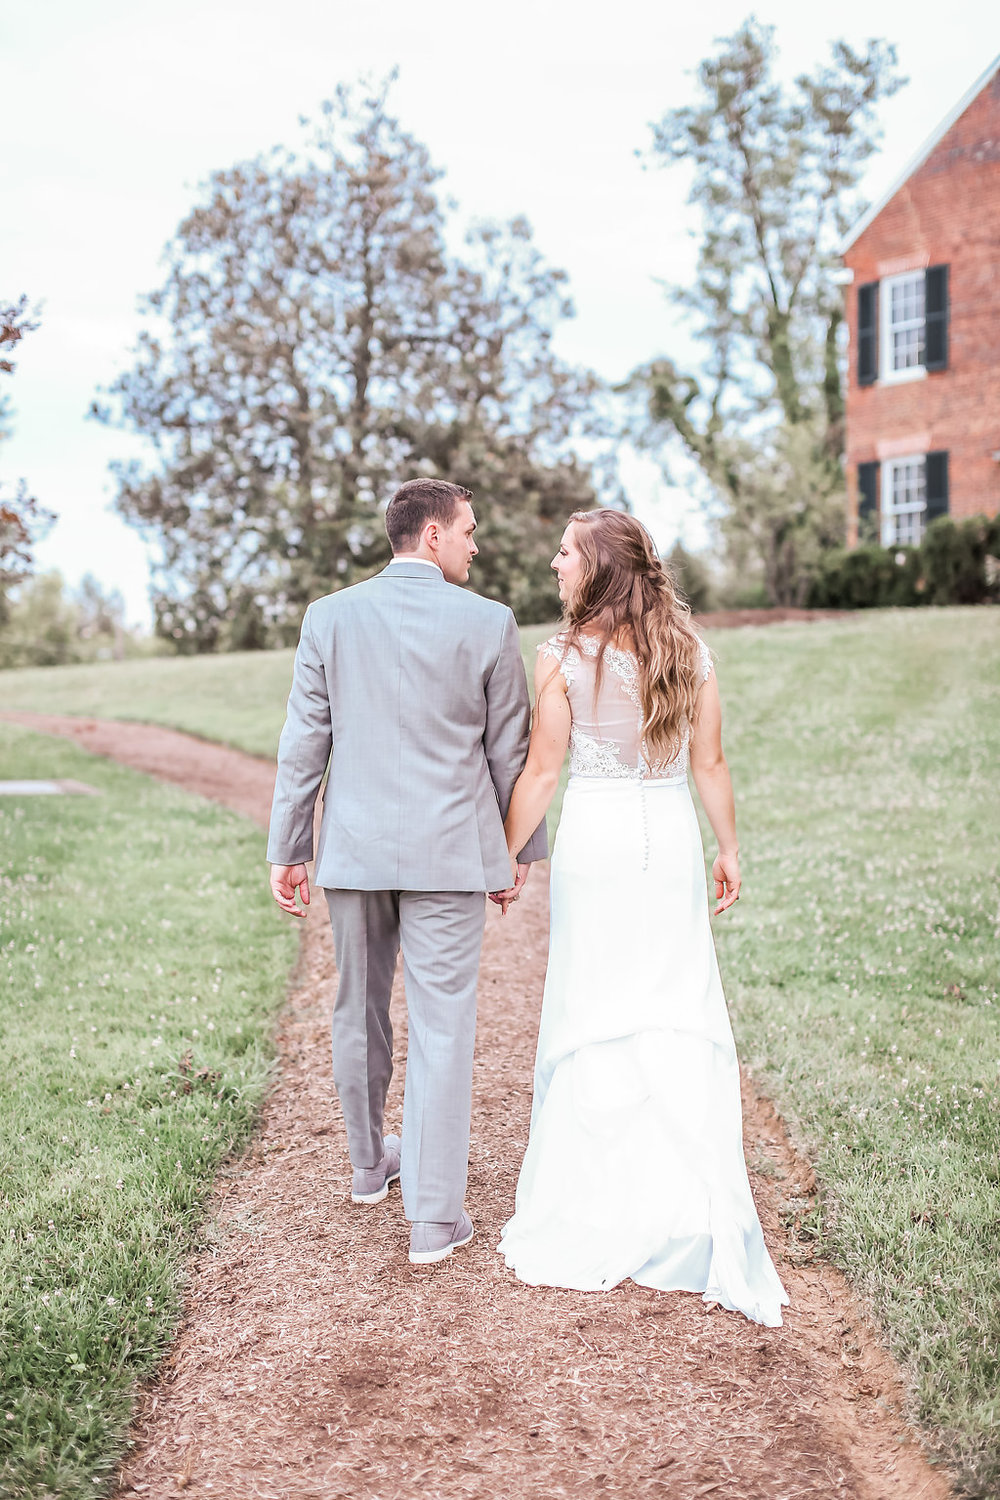 Middleburg Community Center Wedding Middleburg Virginia | Andrea Rodway Photography